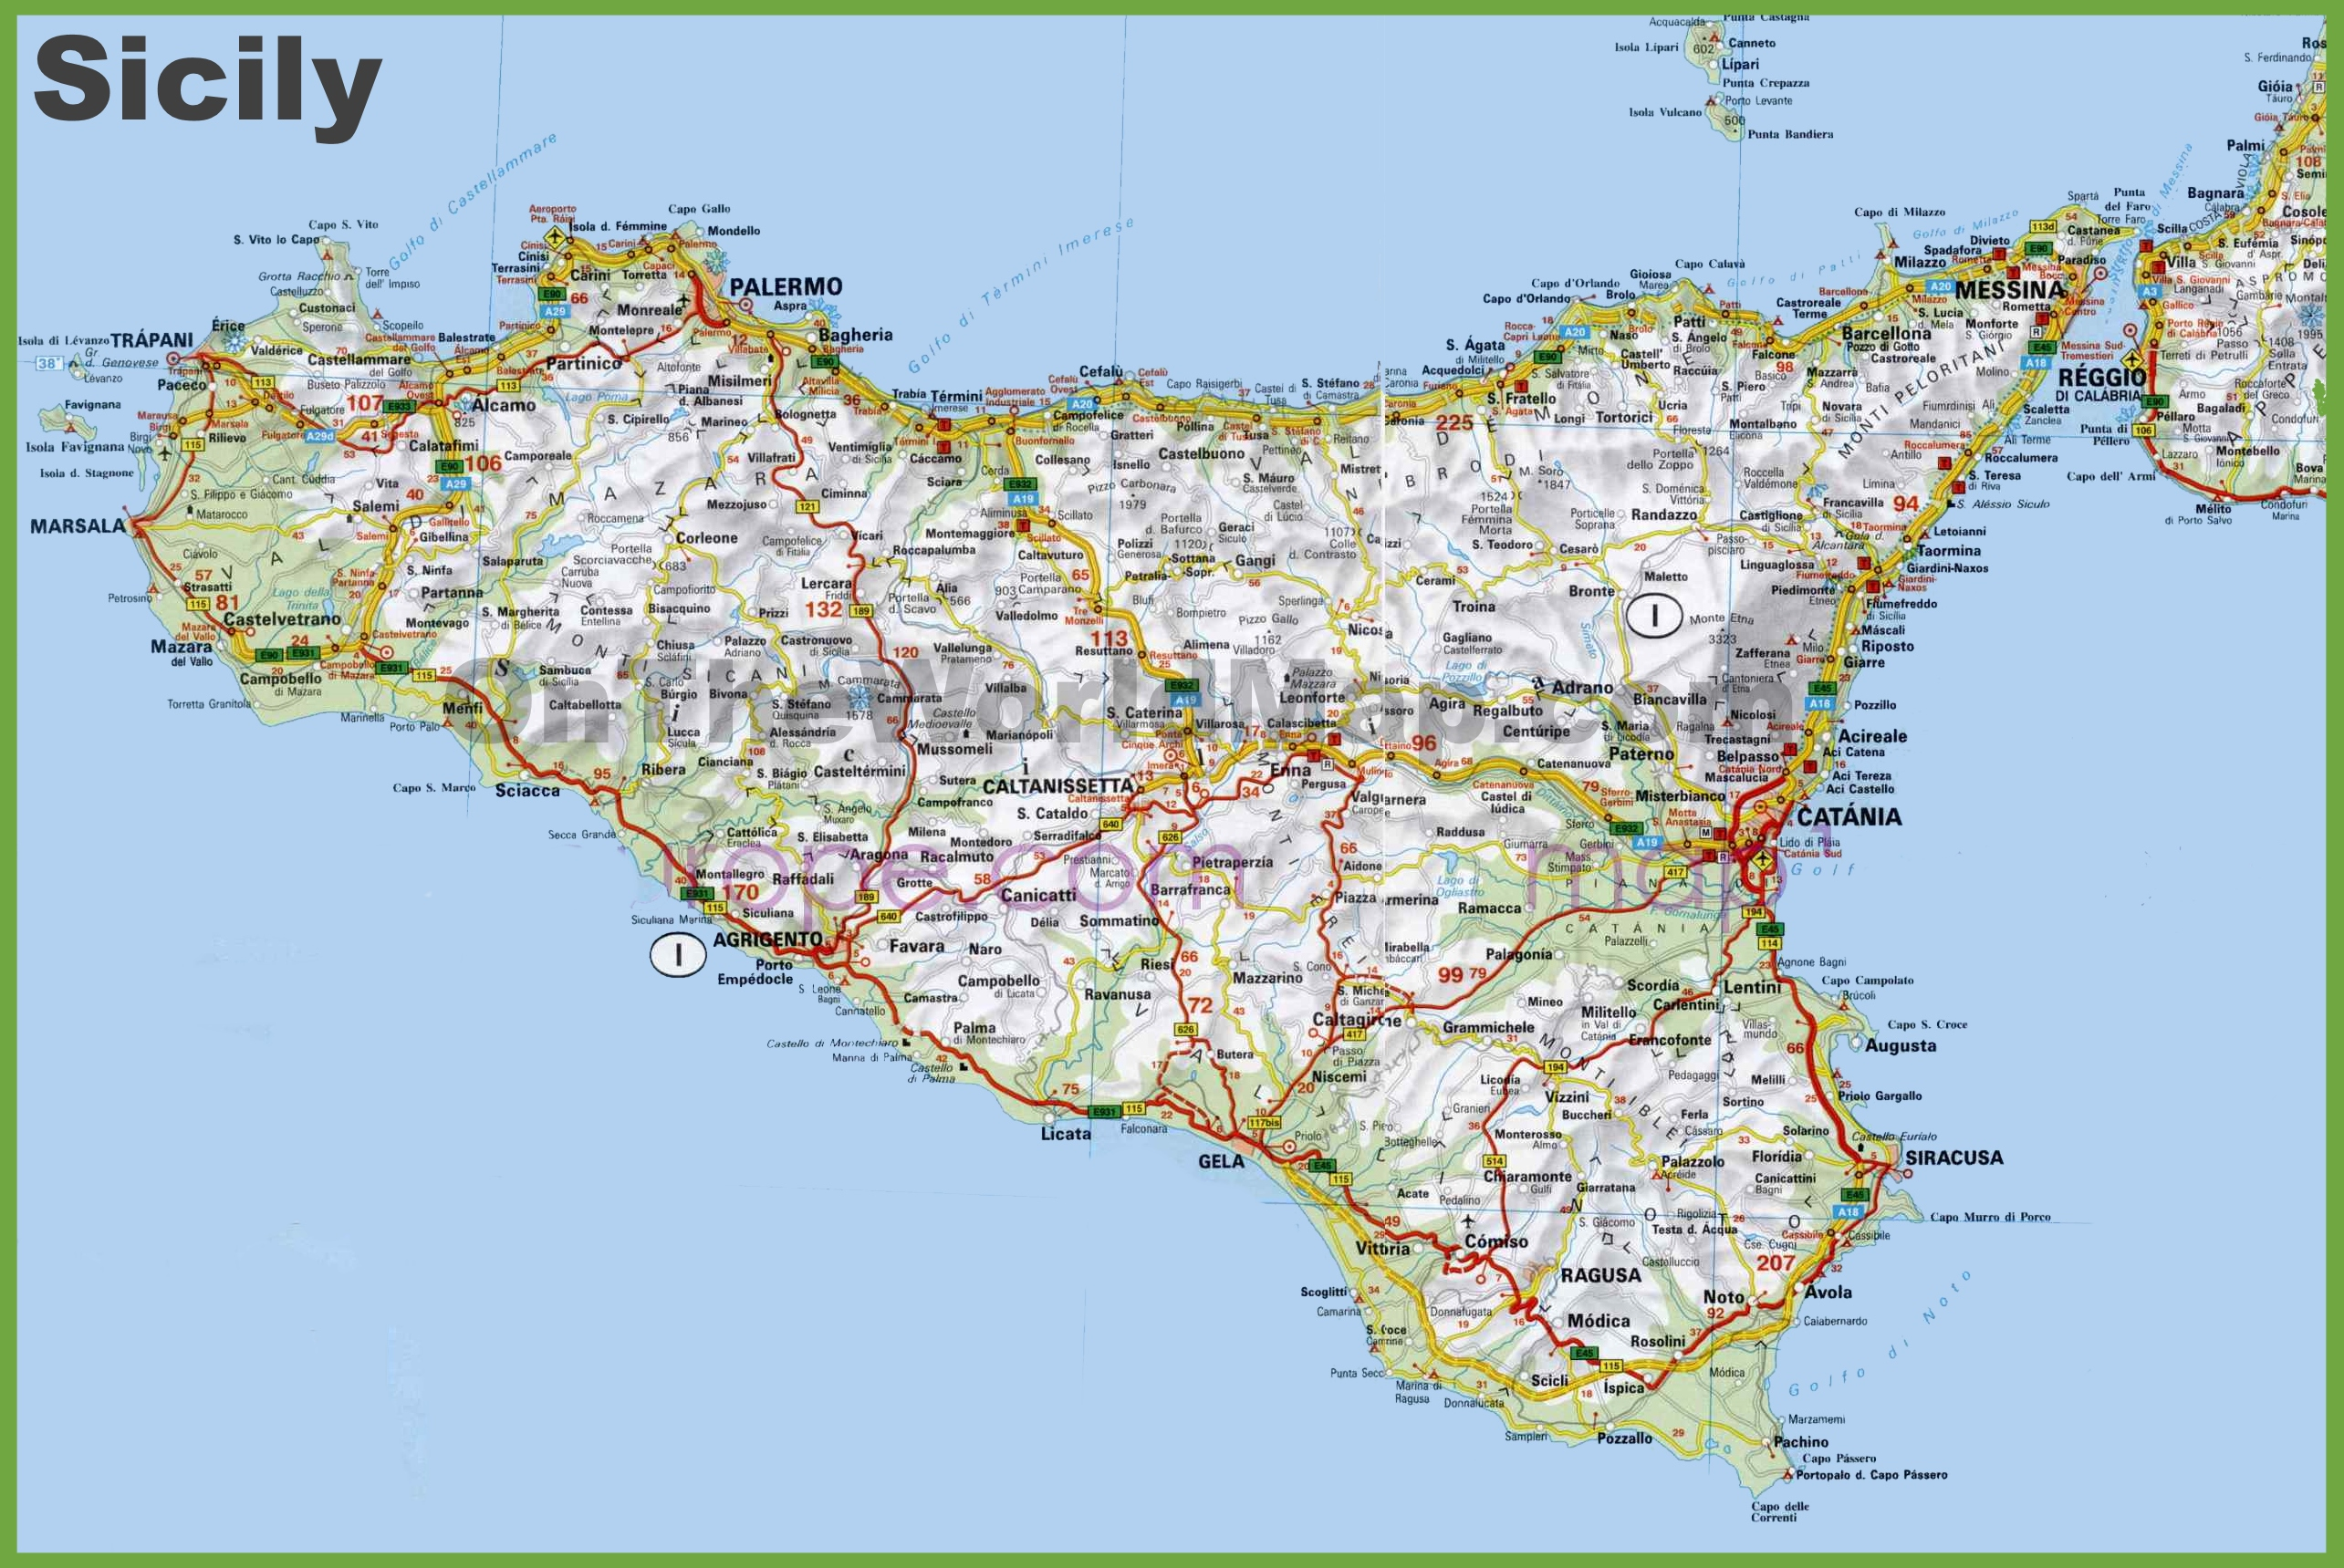 Cities In Sicily Italy Map.Large Detailed Road Map Of Sicily